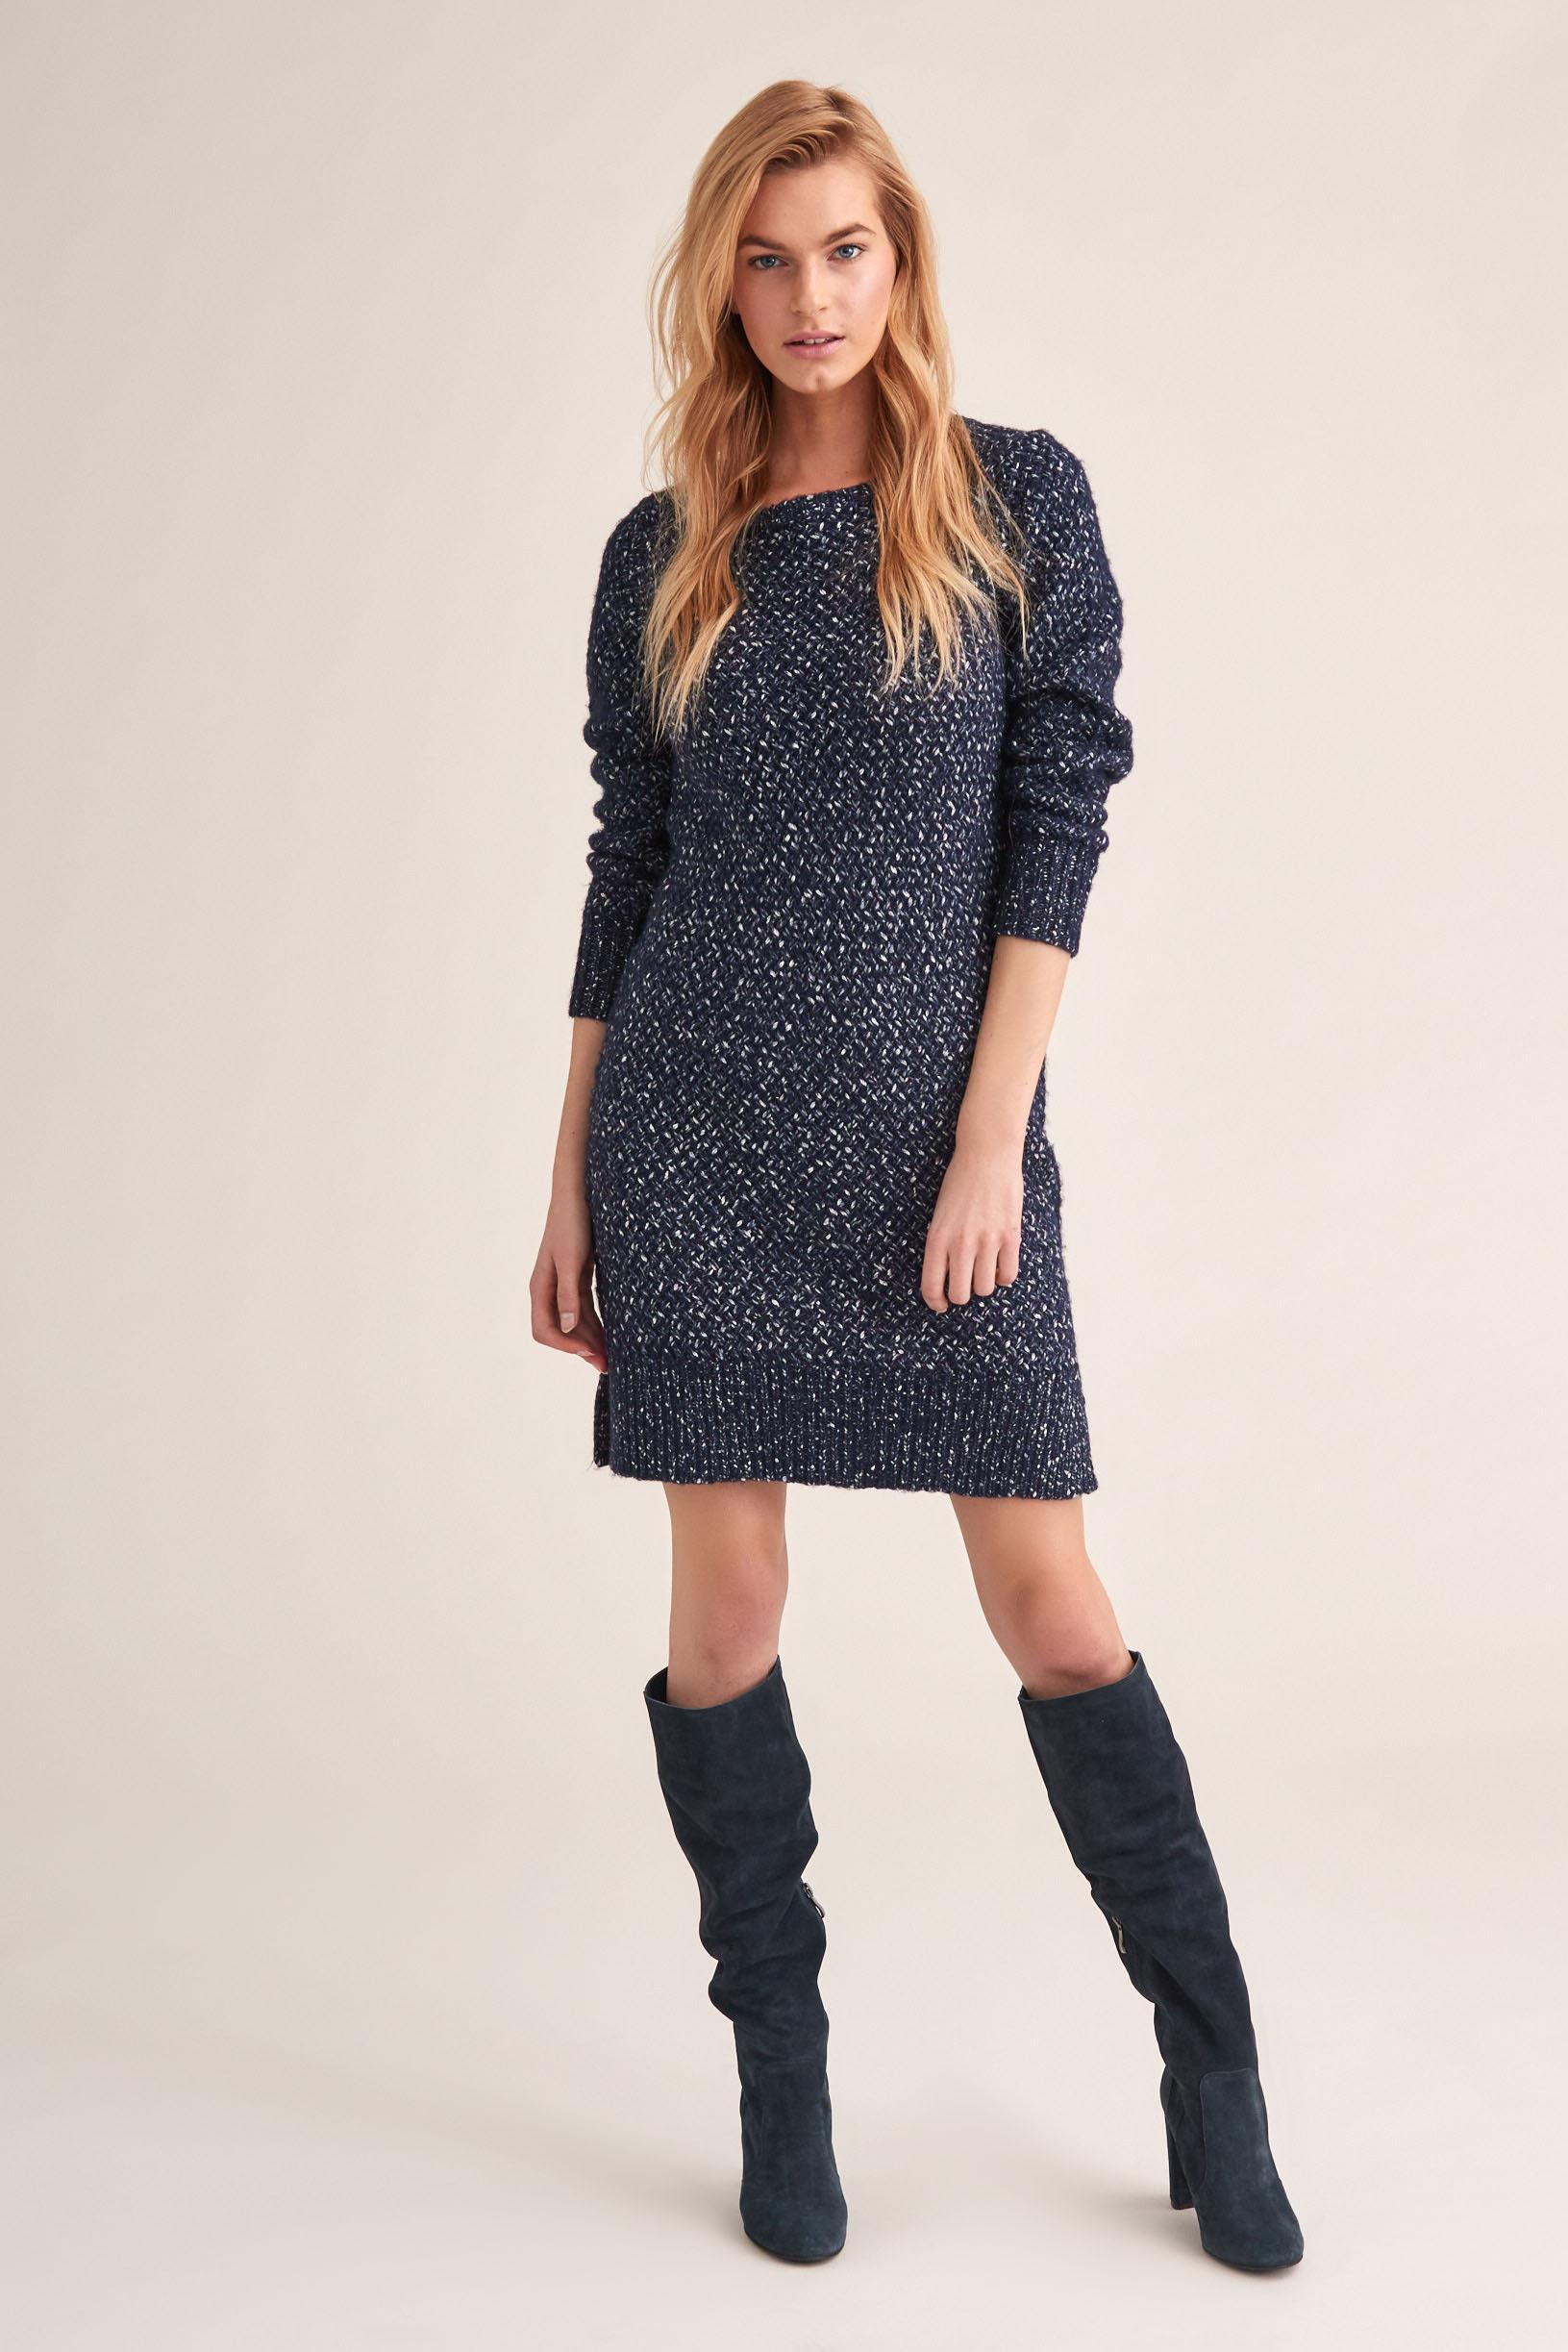 THICK KNIT WEAVE DRESS ANITA